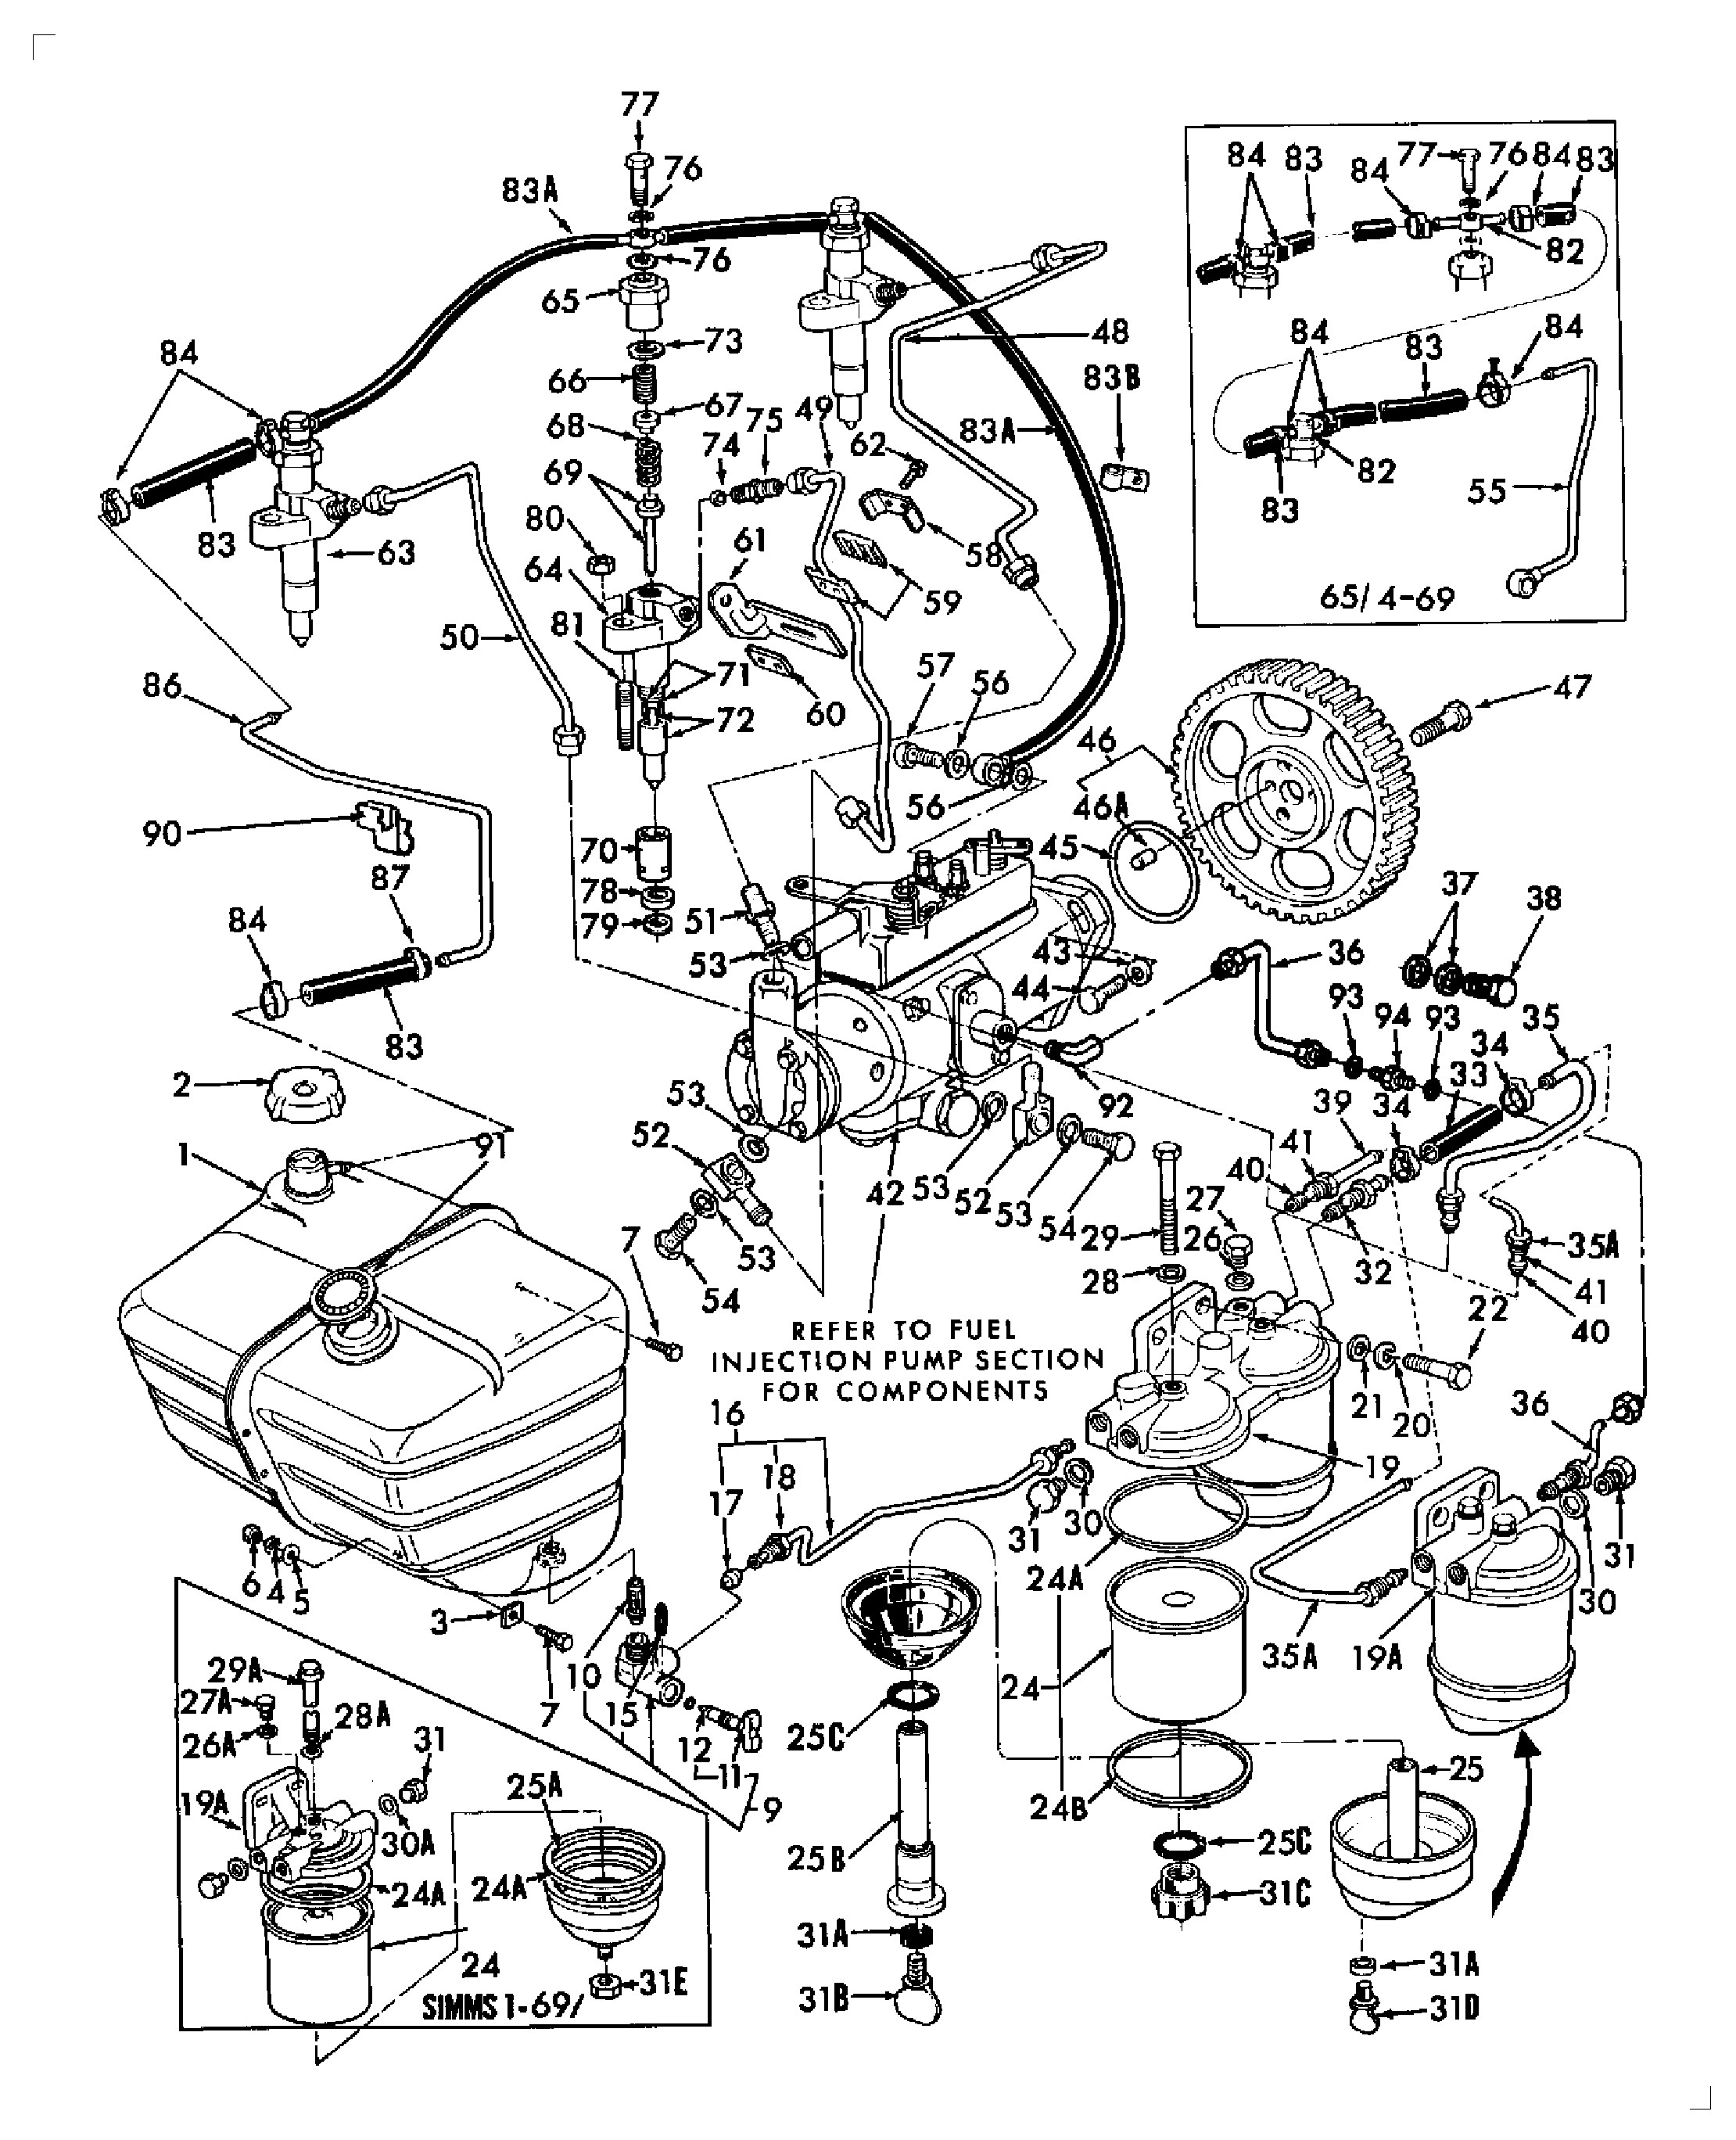 ford 4000 fuel diagram schematic wiring diagram u2022 rh freewiring today ford 4000 fuel system diagram 1962 Ford 4000